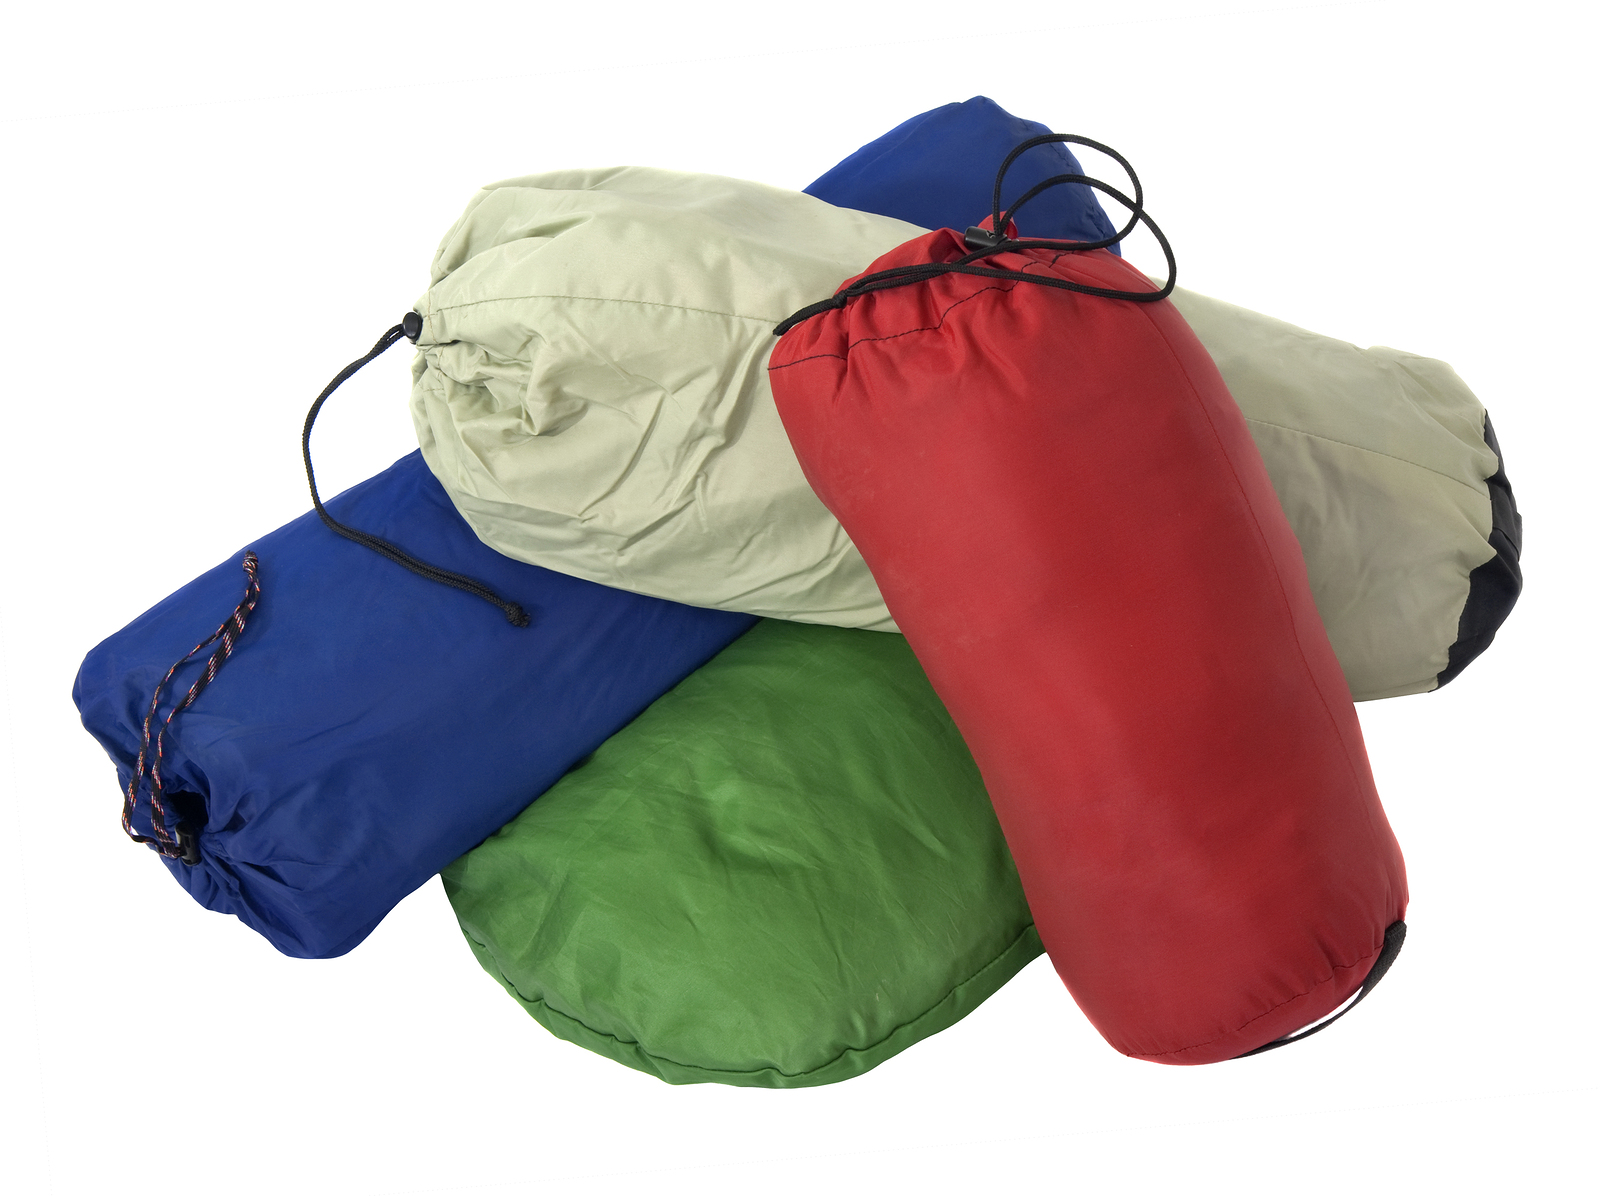 bigstock-Colorful-Bags-With-Camping-Equ-5786881.jpg